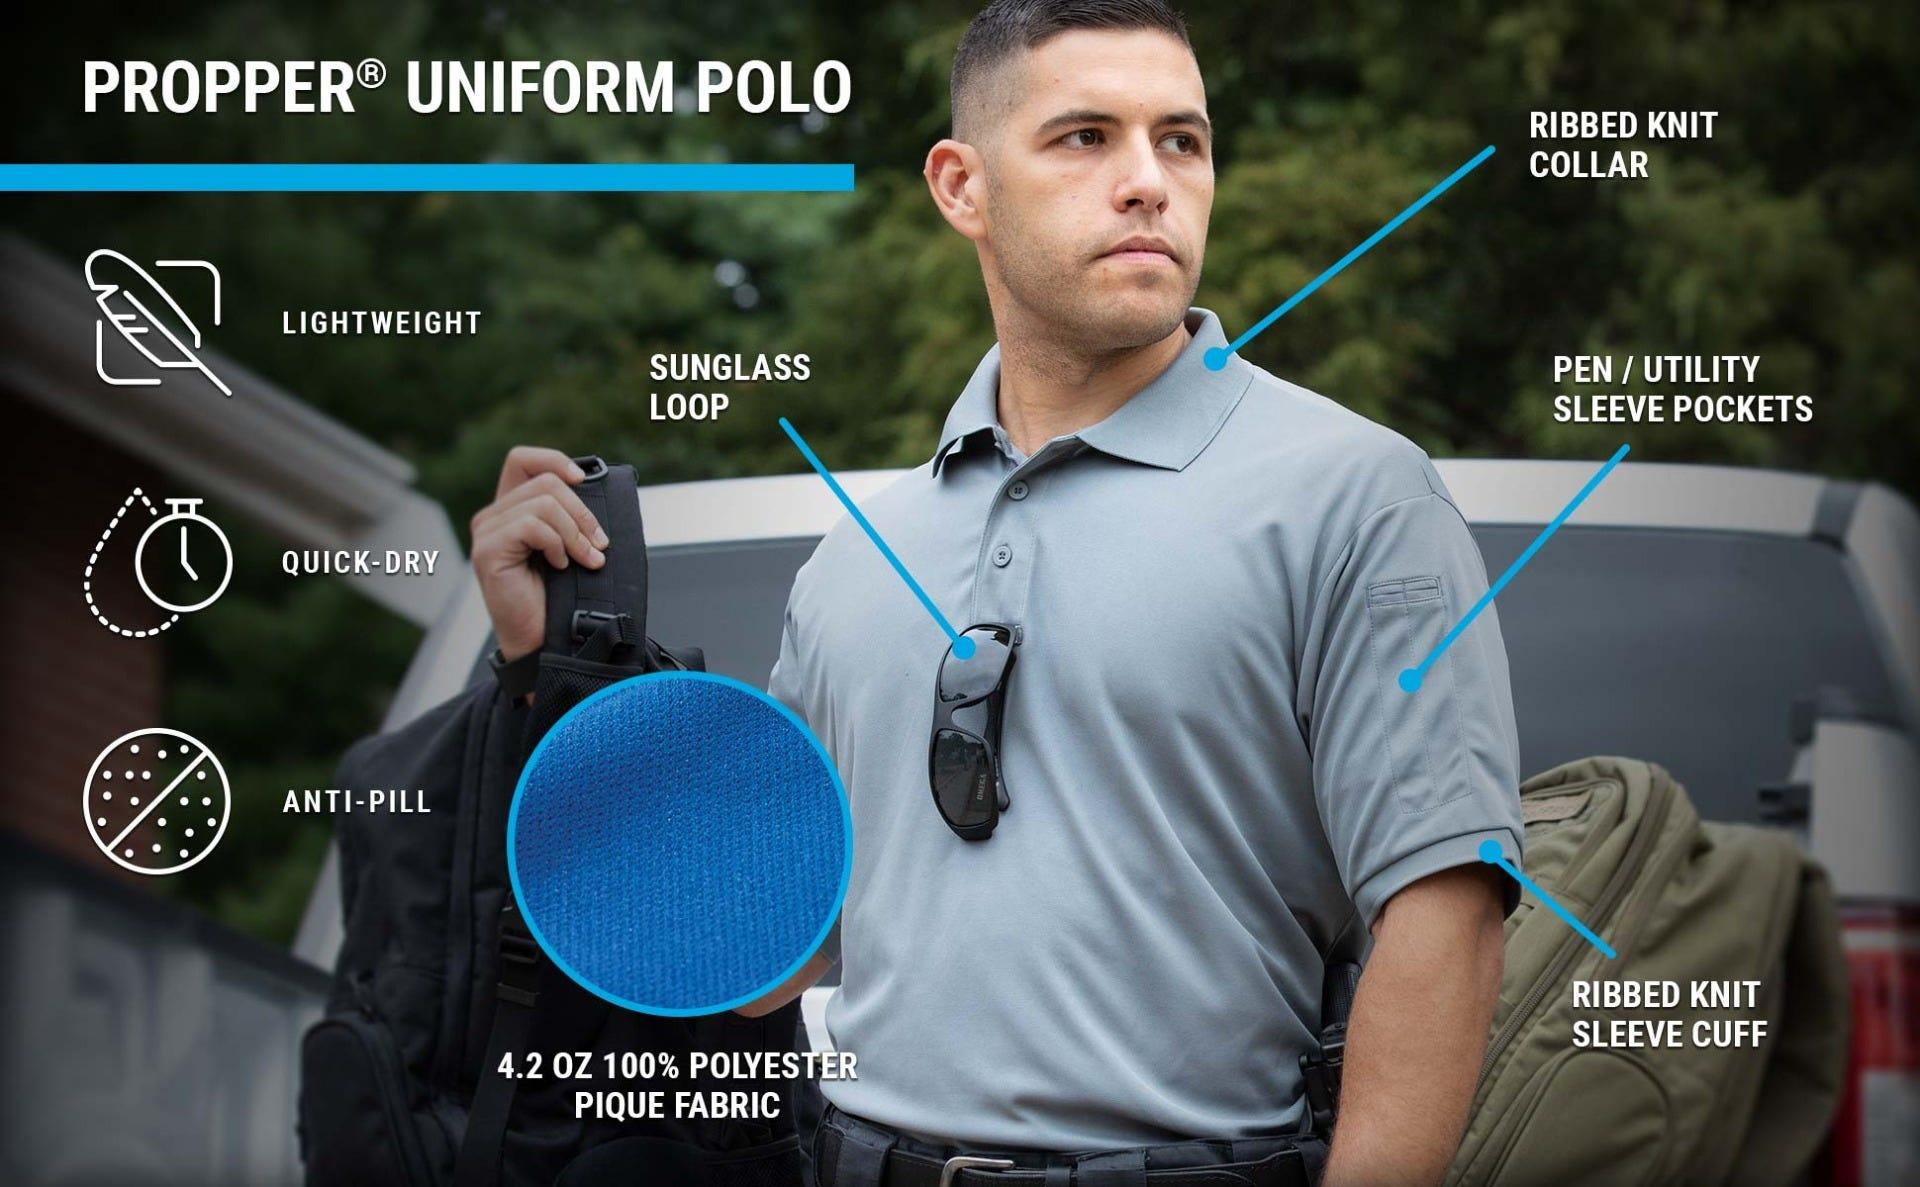 The Men's Uniform Polo with sunglass loop, pen pockets, quick dry capabilty on a guy throwing his backpack over his shoulder.